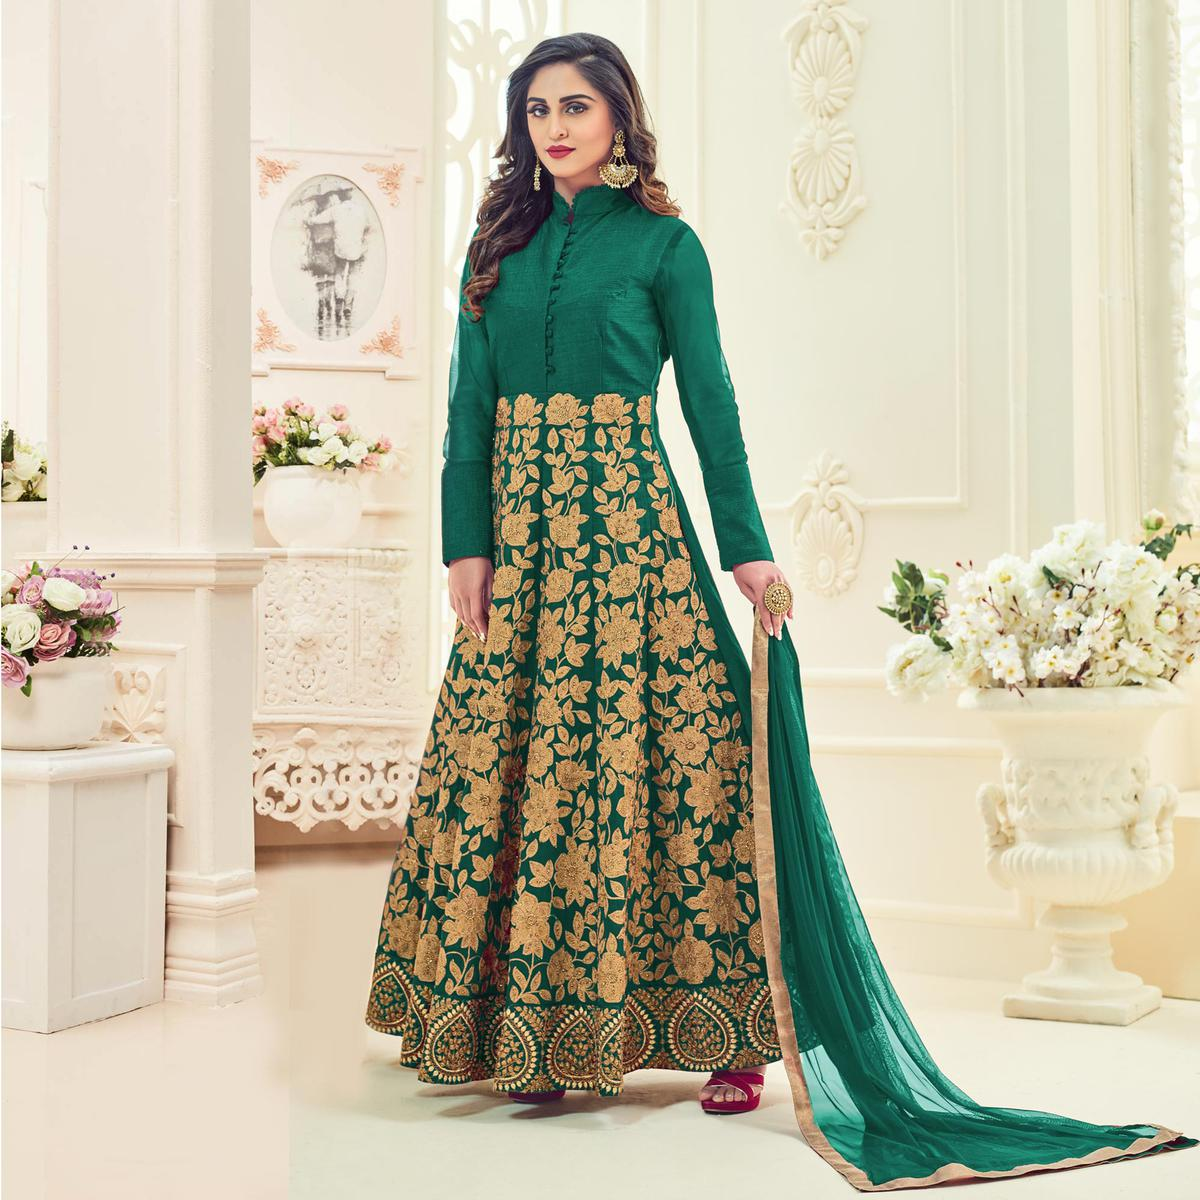 Trendy Turquoise Colored Heavy Embroidered Party Wear Raw Silk Anarkali Suit